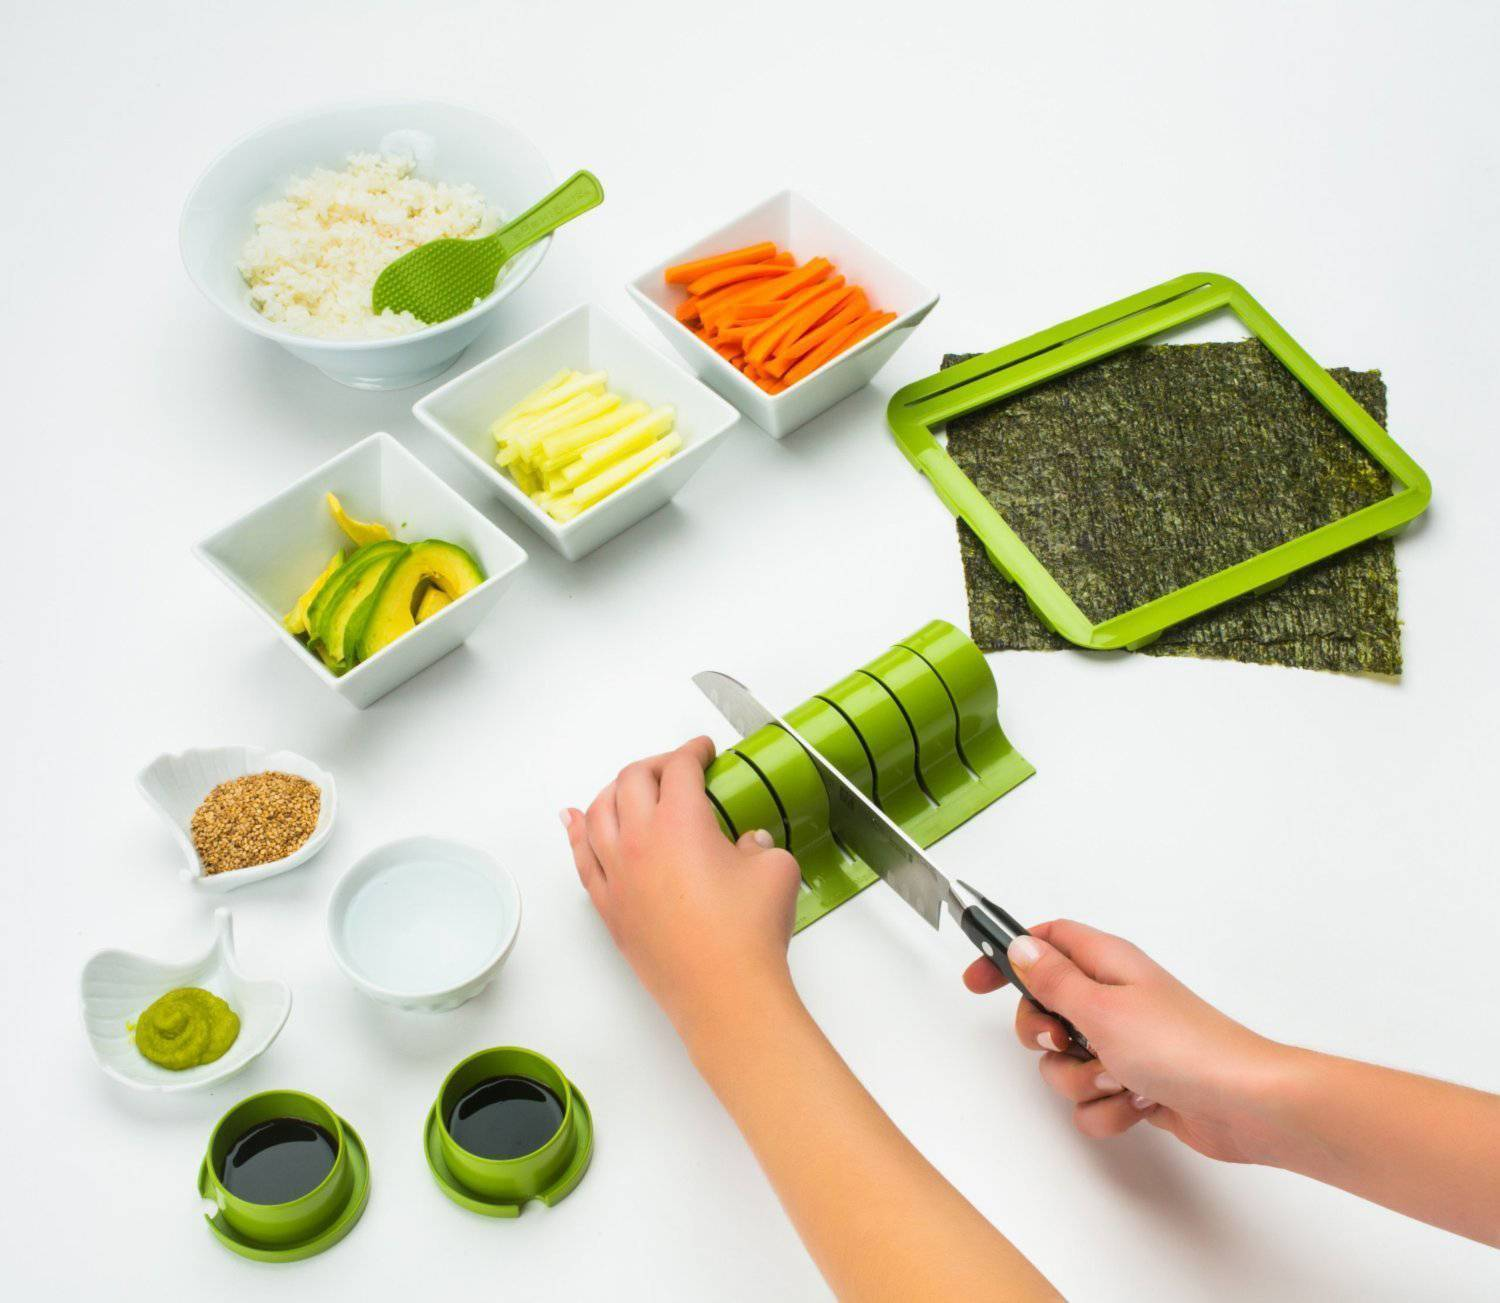 Sushi Making Kit DIY Easy Sushi Maker Machine Set Rice Roller Mold Cutter